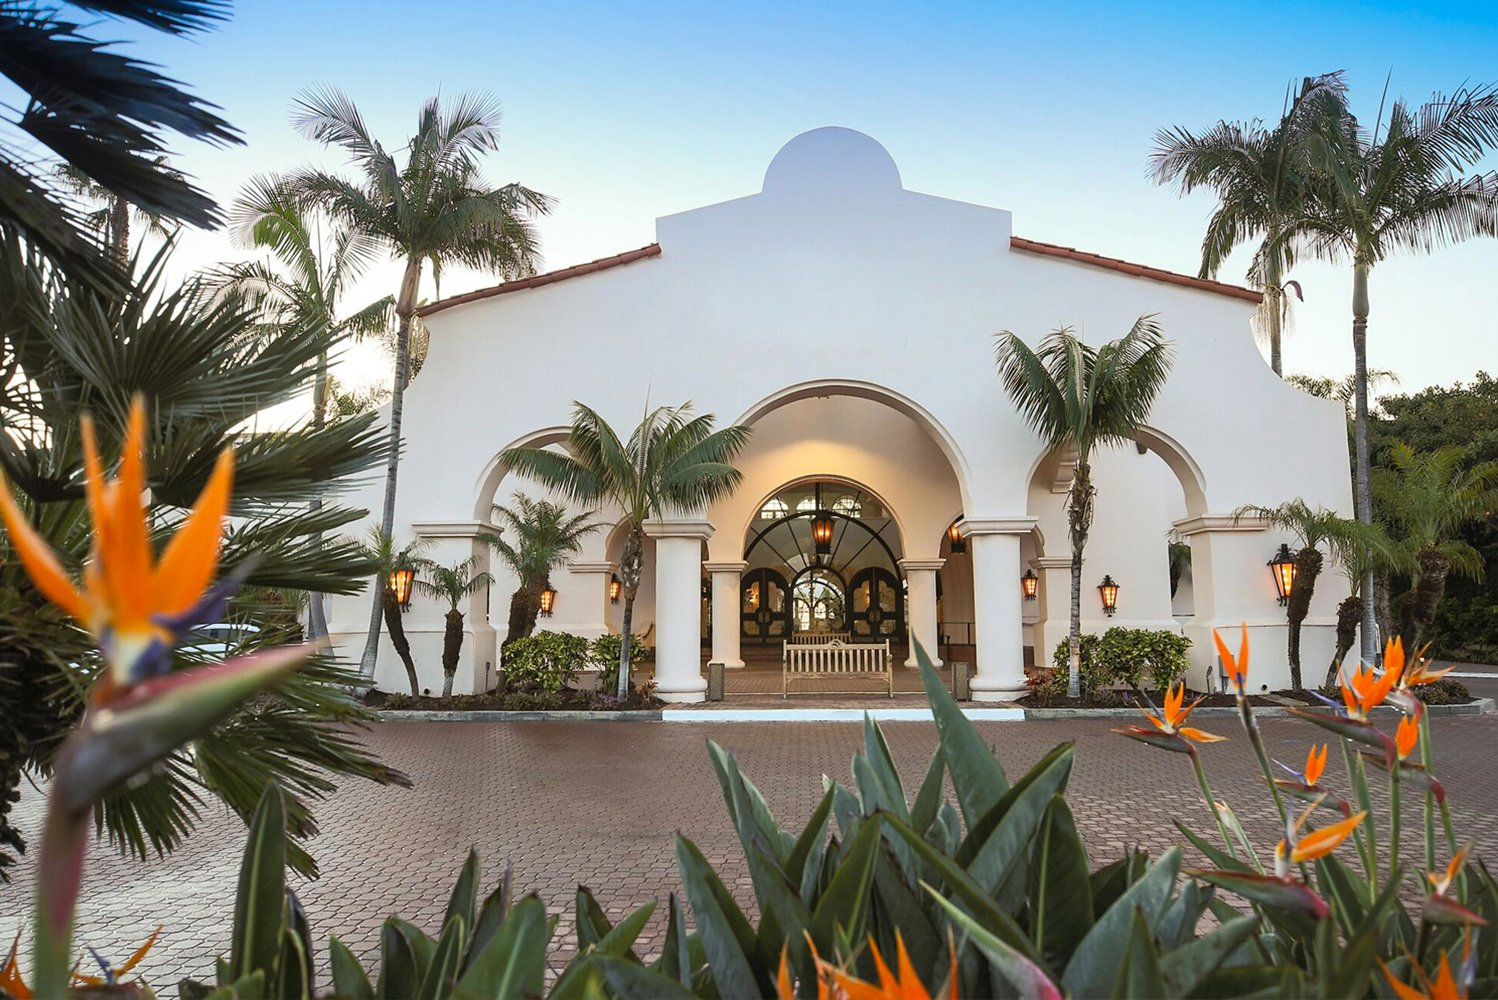 Rooms: How The Fess Parker Became The Hilton Santa Barbara